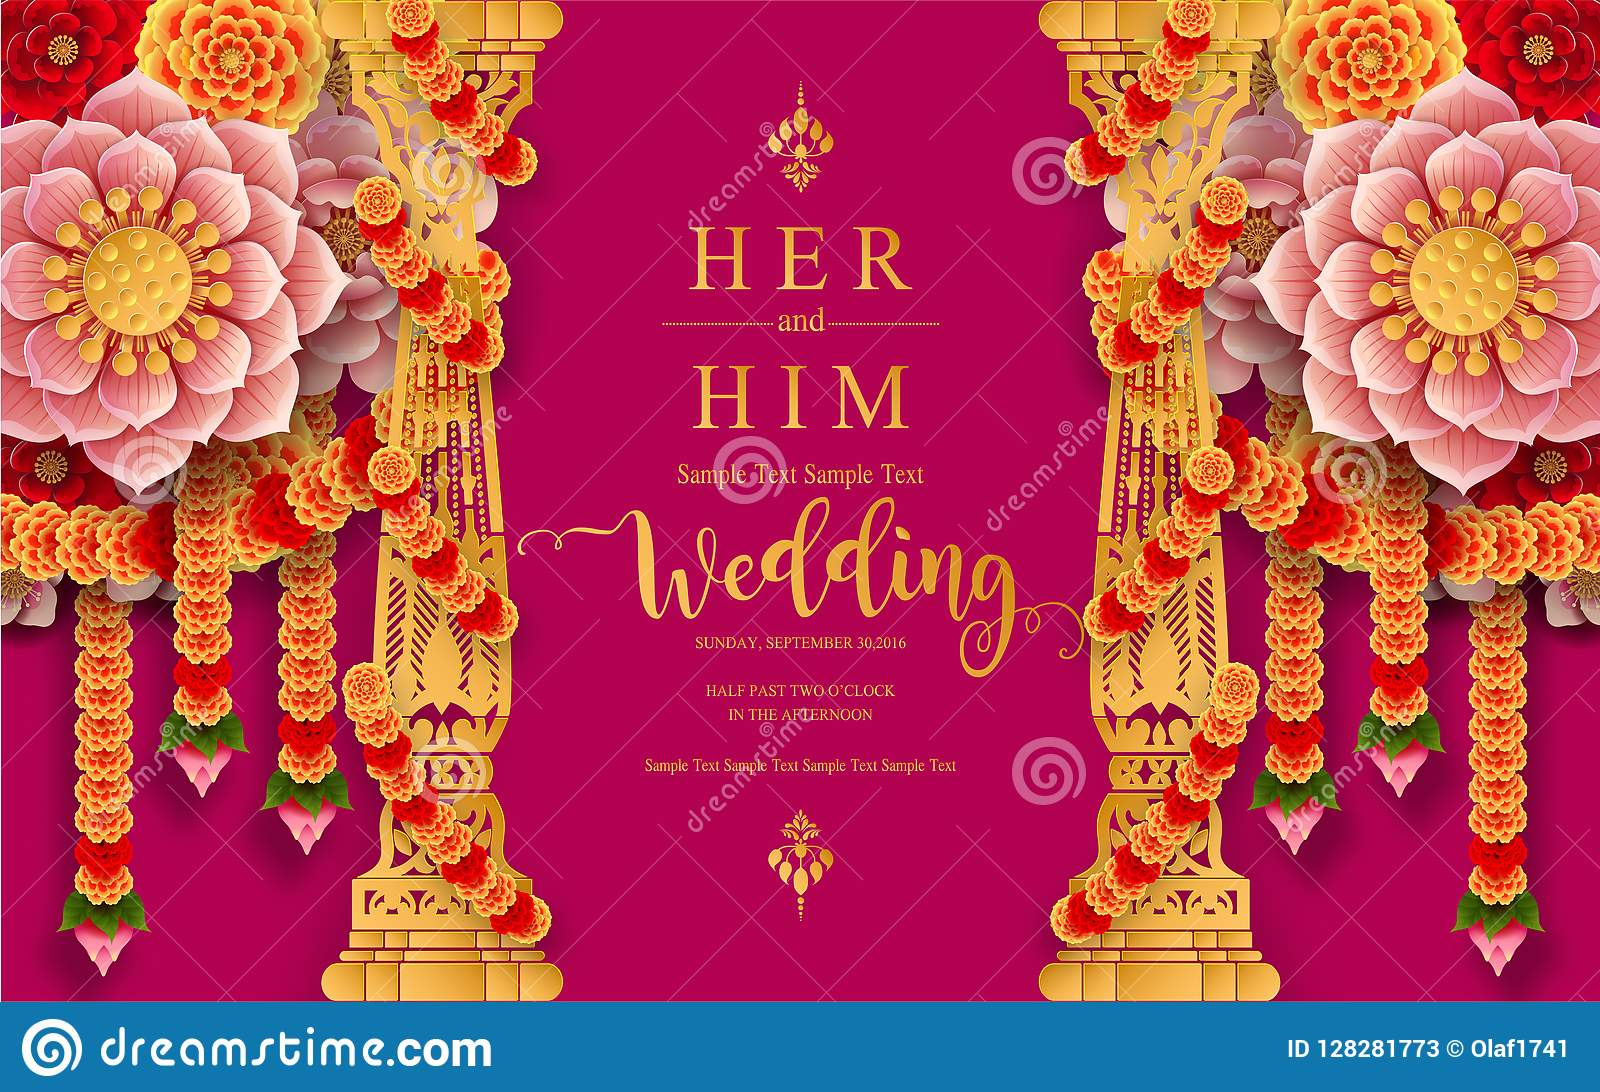 https www dreamstime com indian wedding invitation card templates gold patterned crystals paper color background inindian wedding invitation image128281773